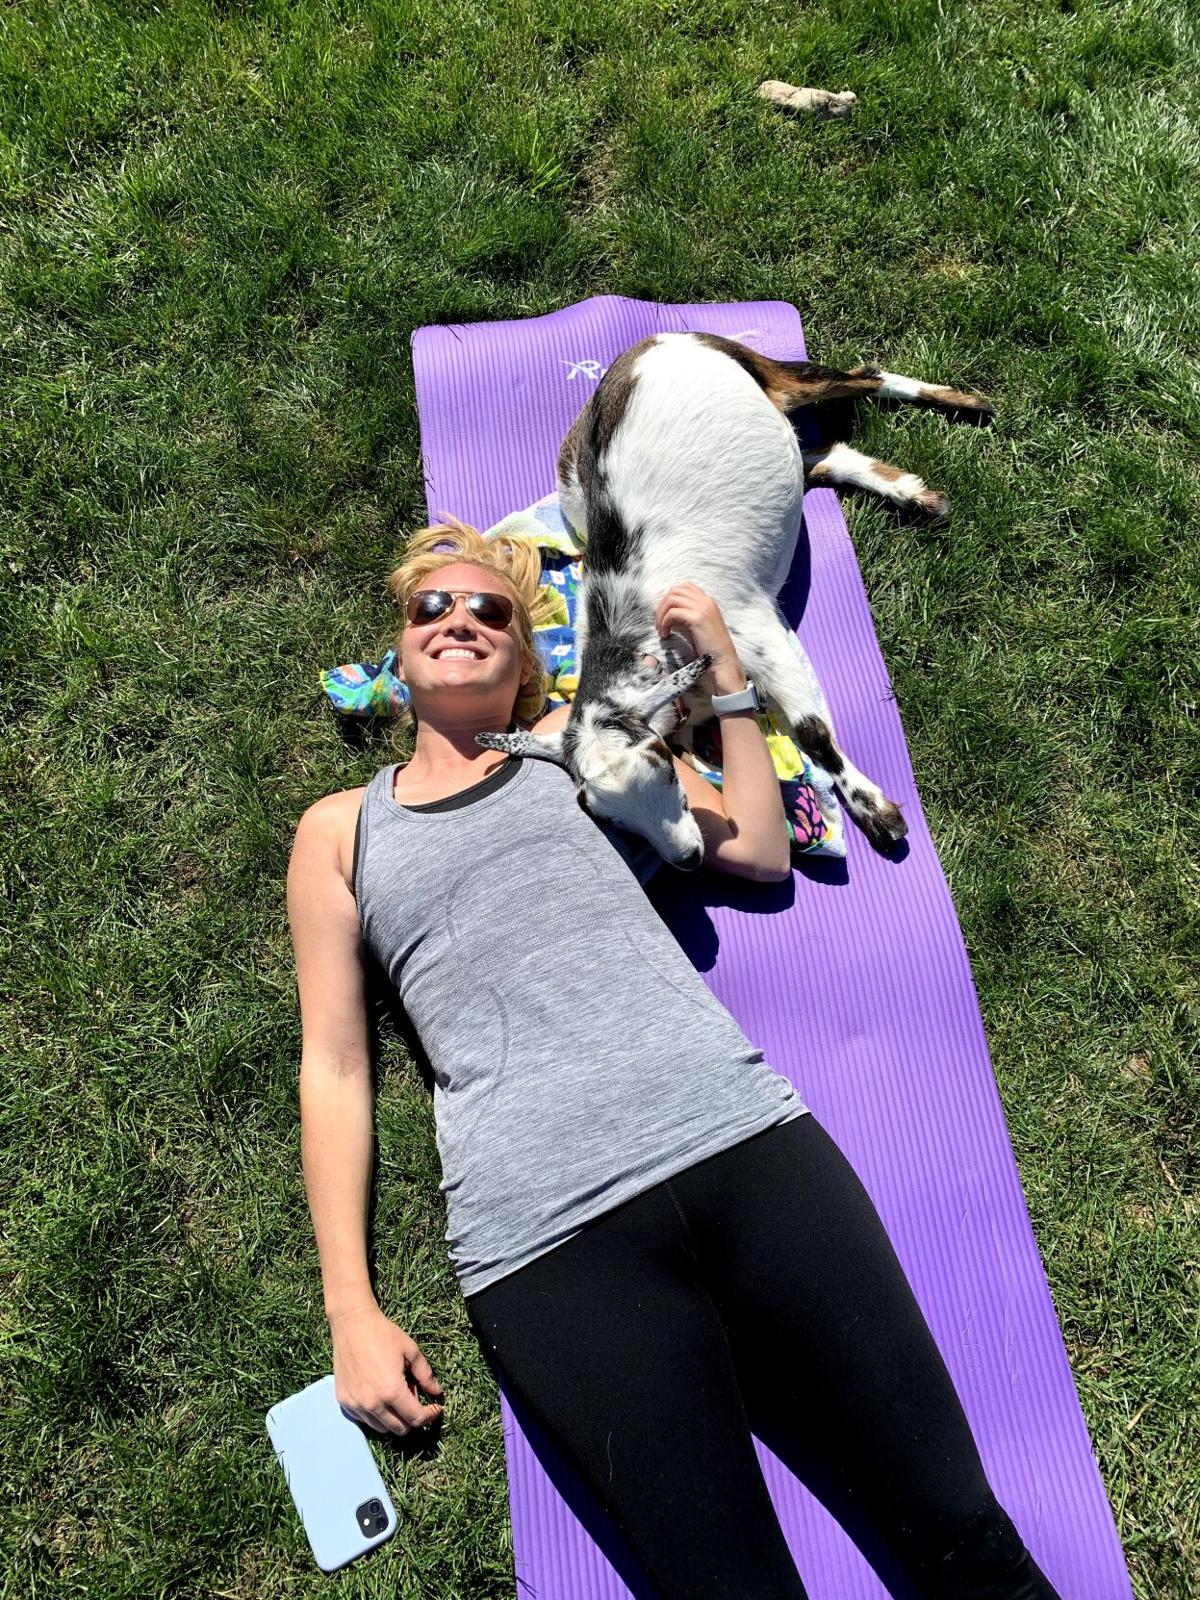 Kane County farm connects people, goats and yoga